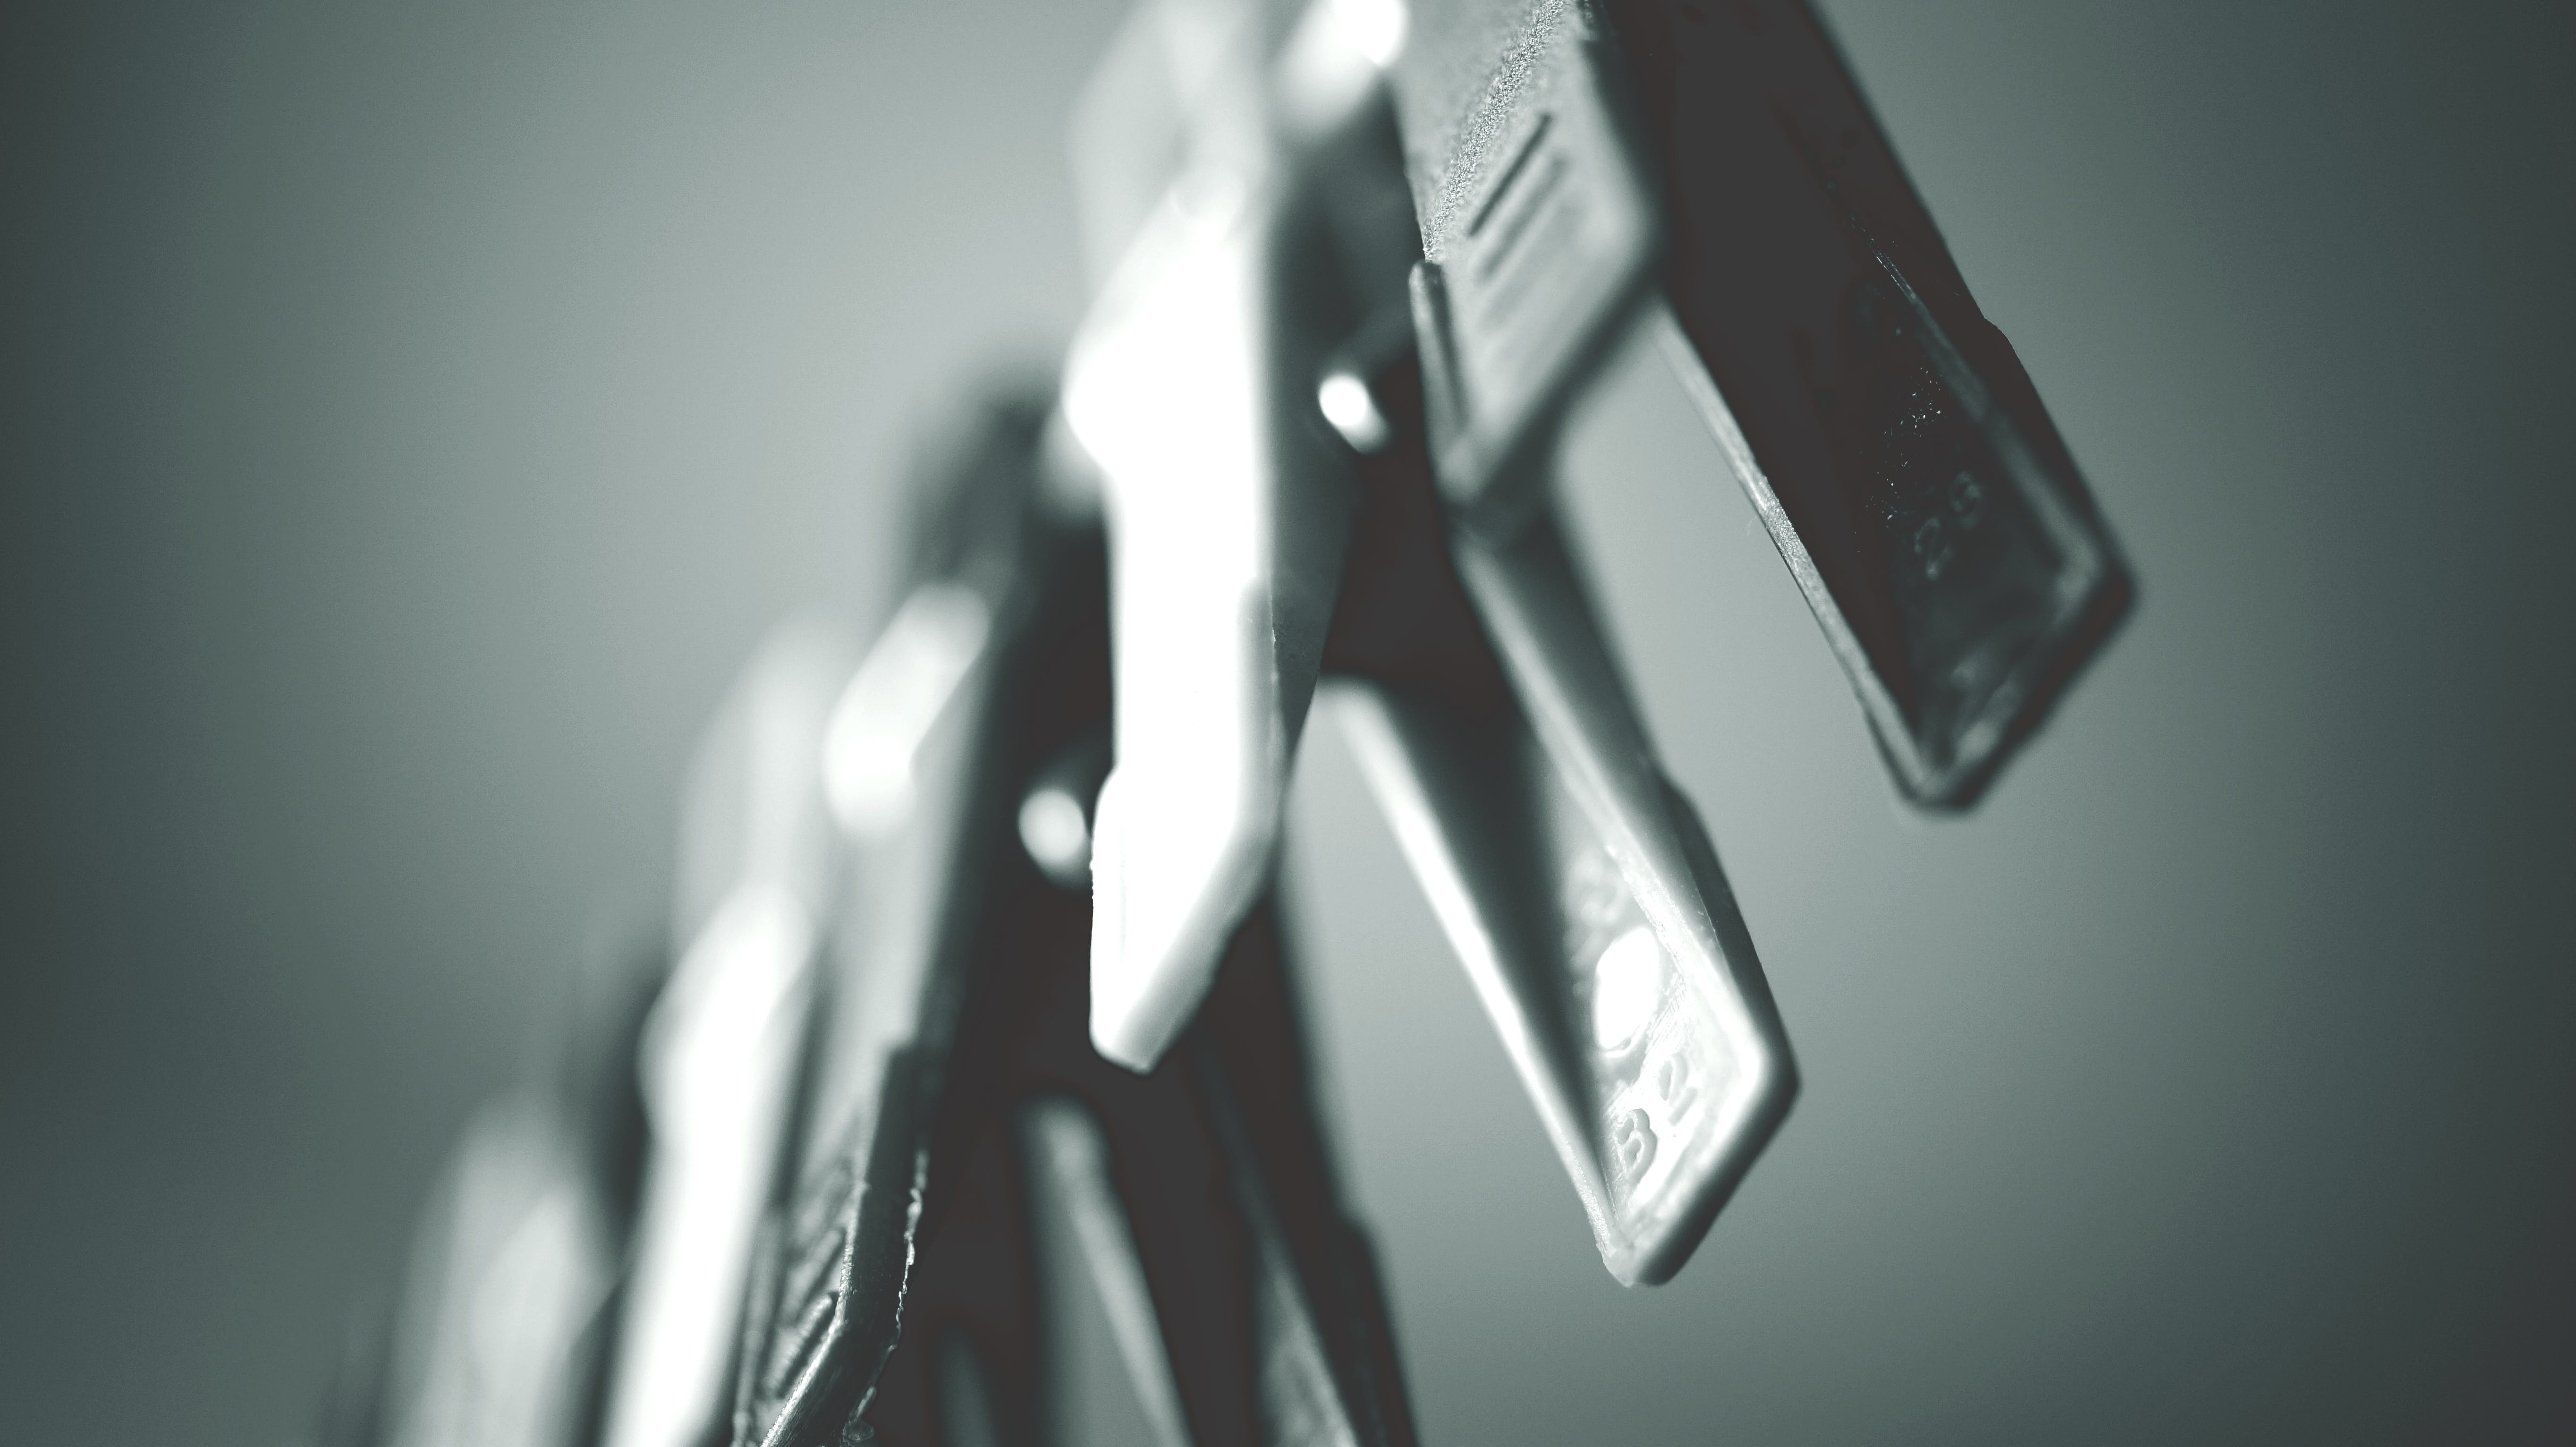 Grayscale Photography Clothes Clips